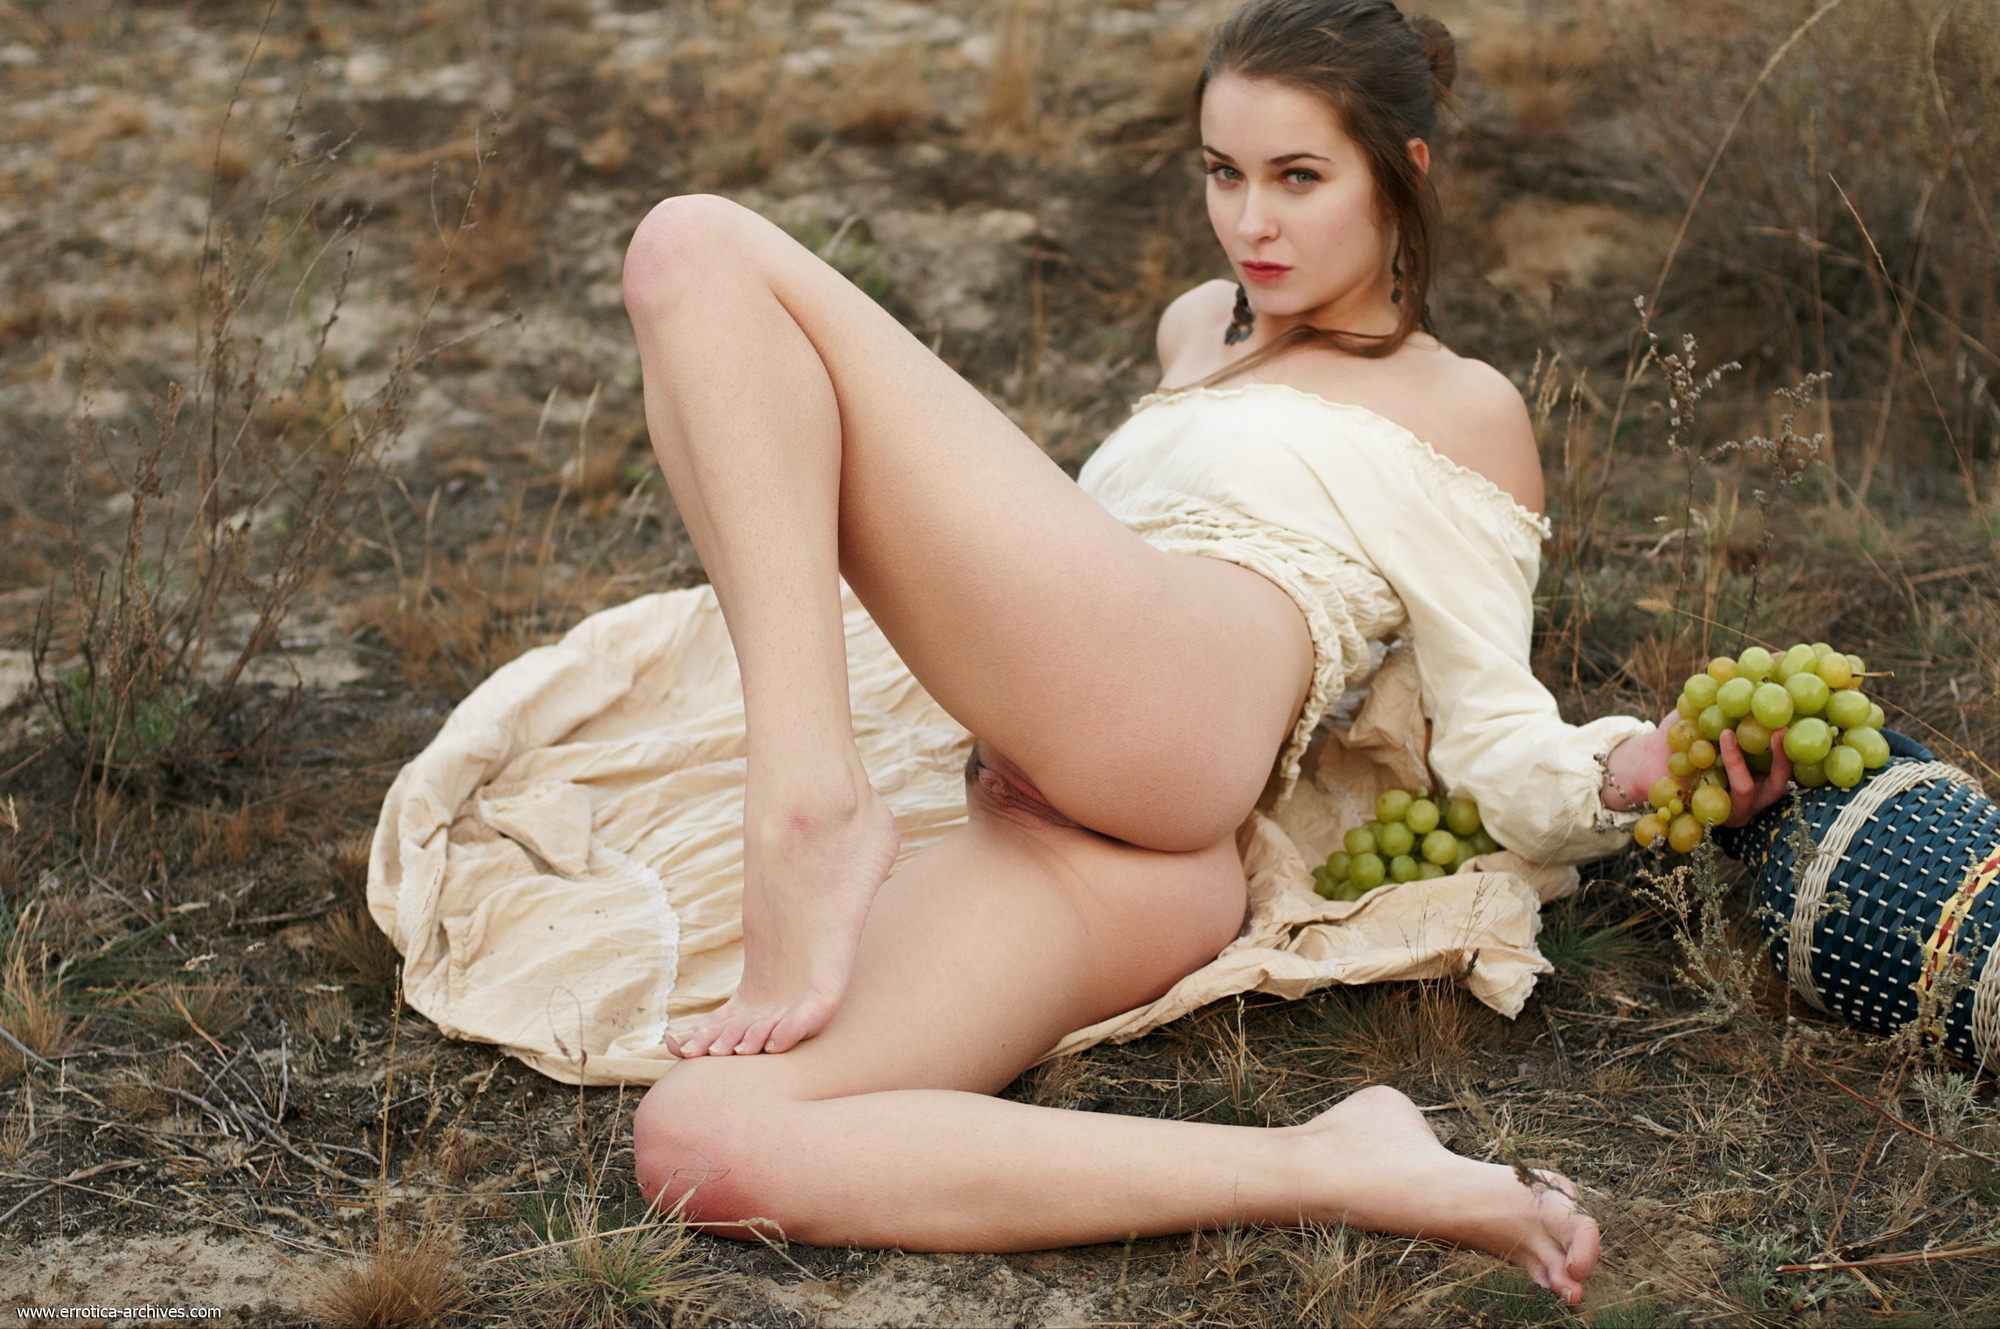 milana-naked-jug-wine-grapes-outdoor-errotica-archives-19